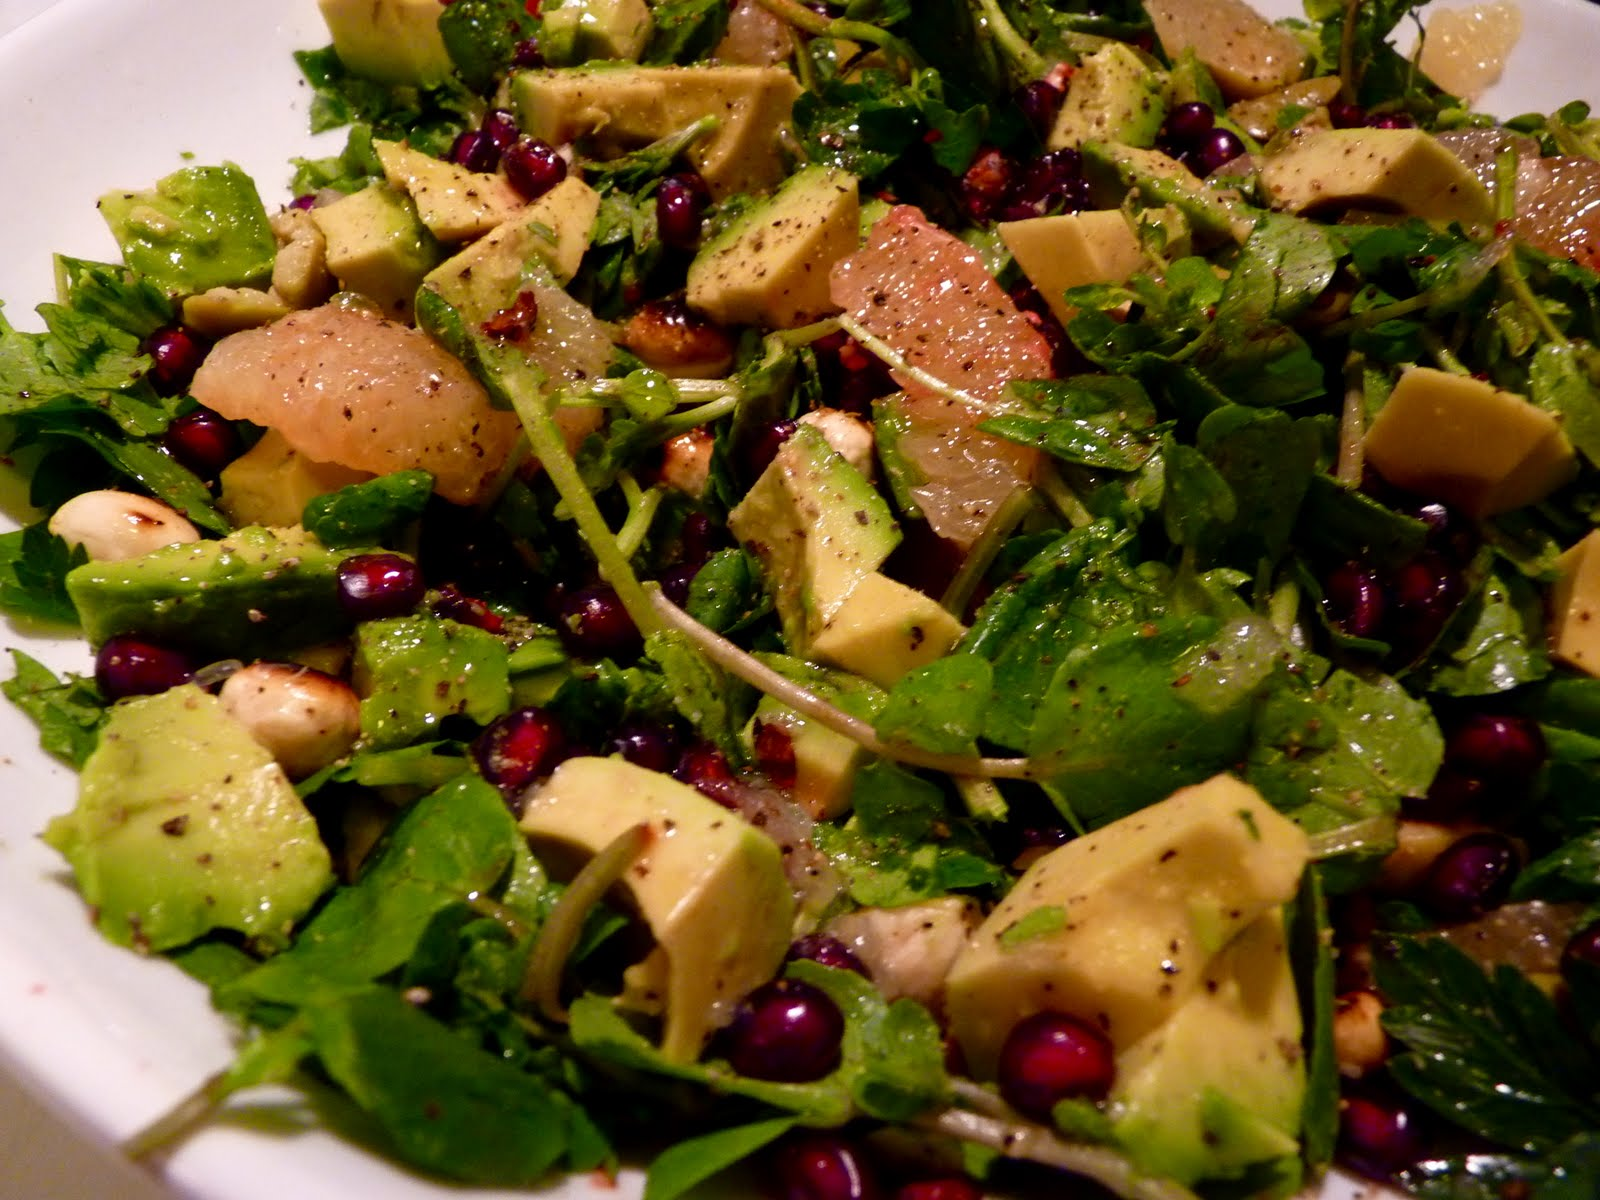 ... : Smashed Green Olive & Grapefruit Salad with Pomegranate & Avocado